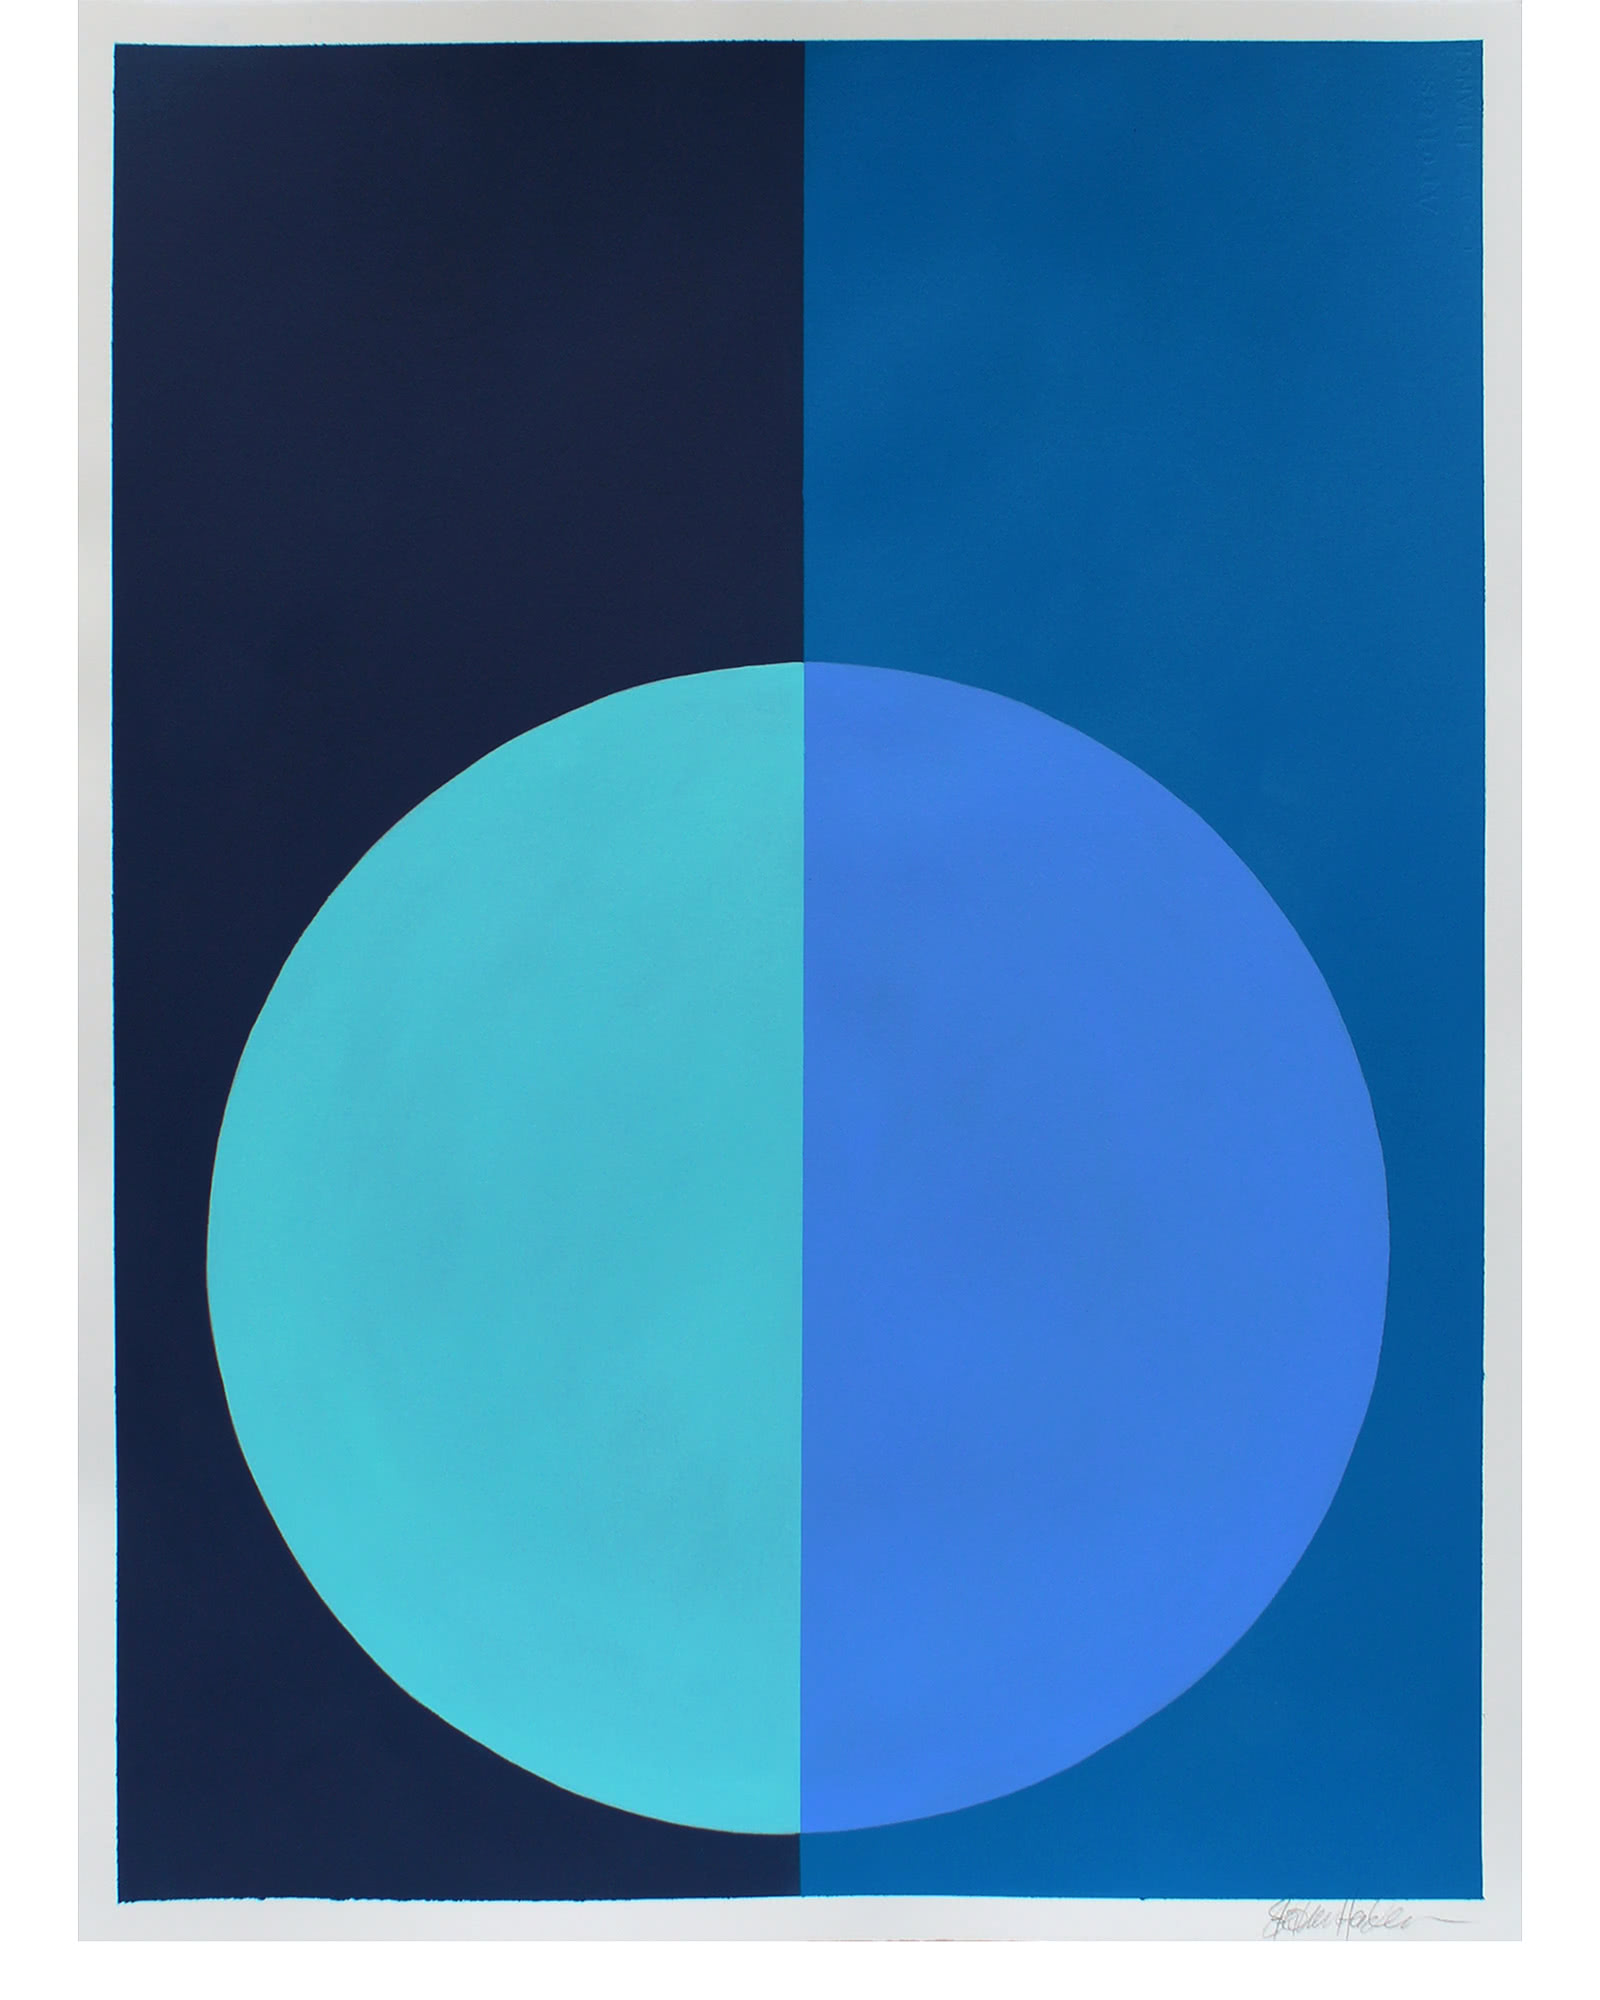 """Variation on a Circle in Indigo and Calypso"" by Stephanie Henderson,"